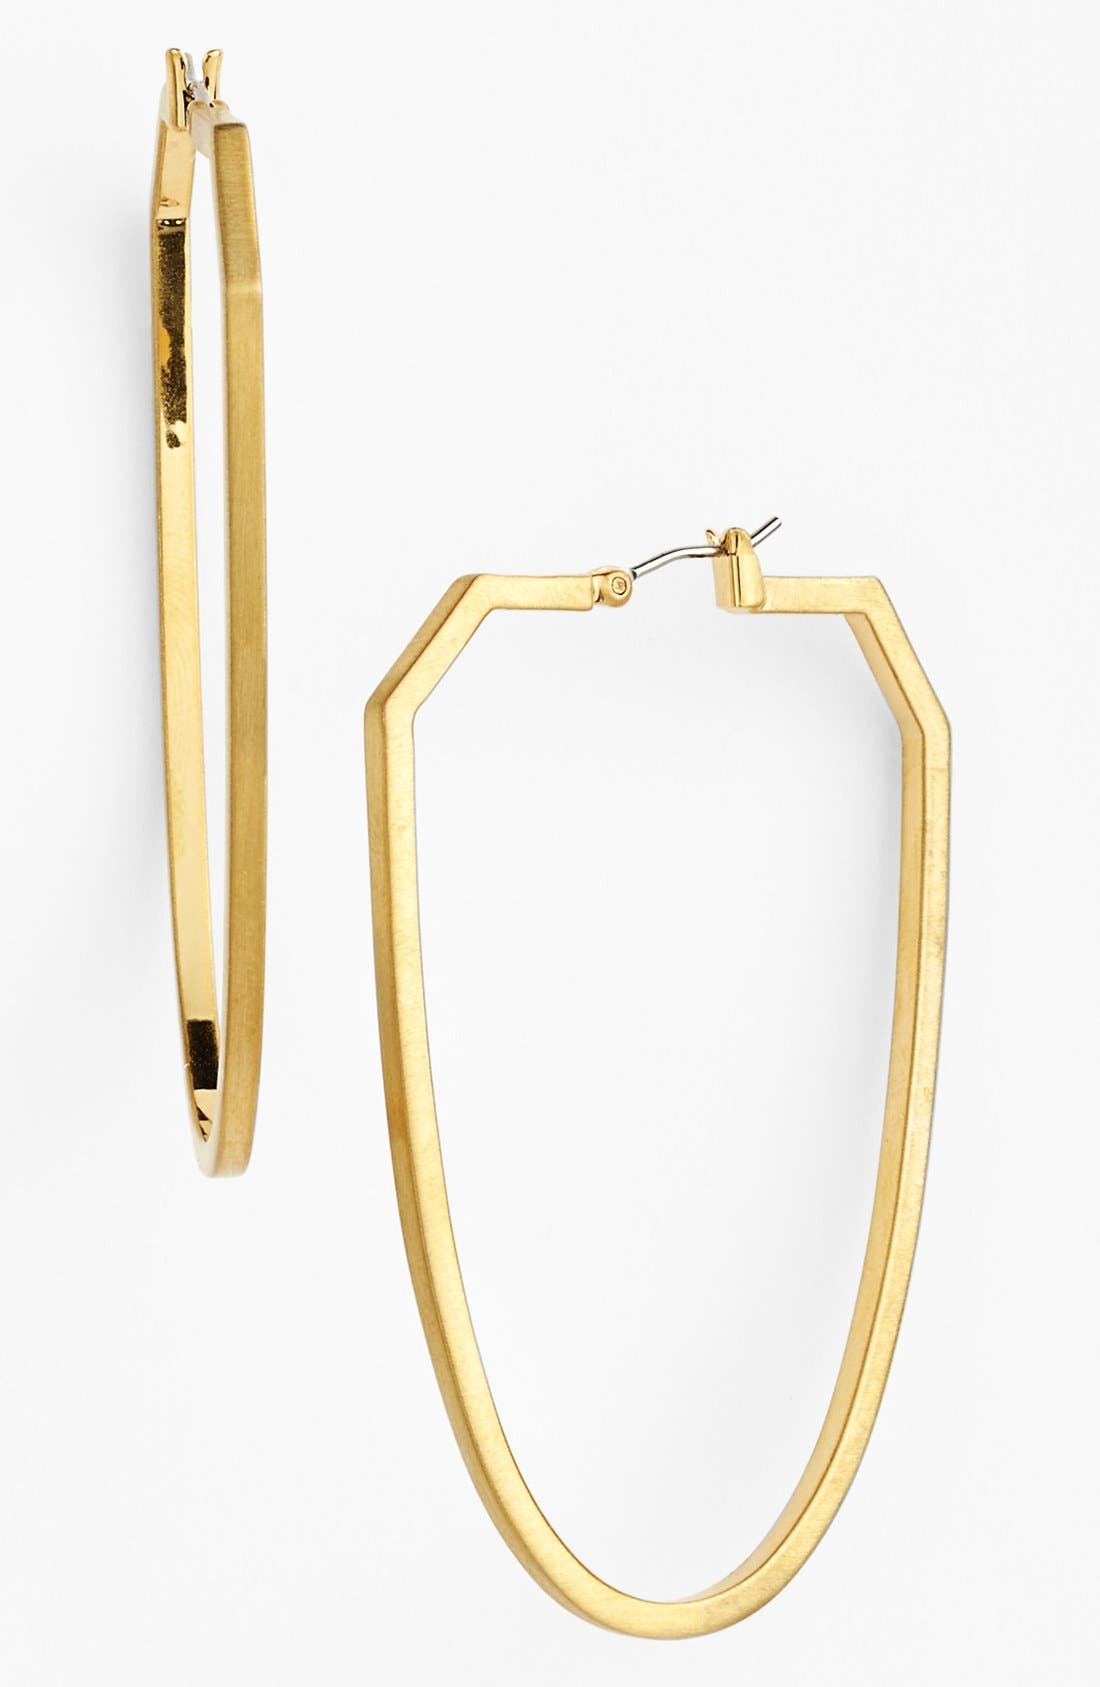 Alternate Image 1 Selected - Vince Camuto 'Ethereal Statement' Oblong Hoop Earrings